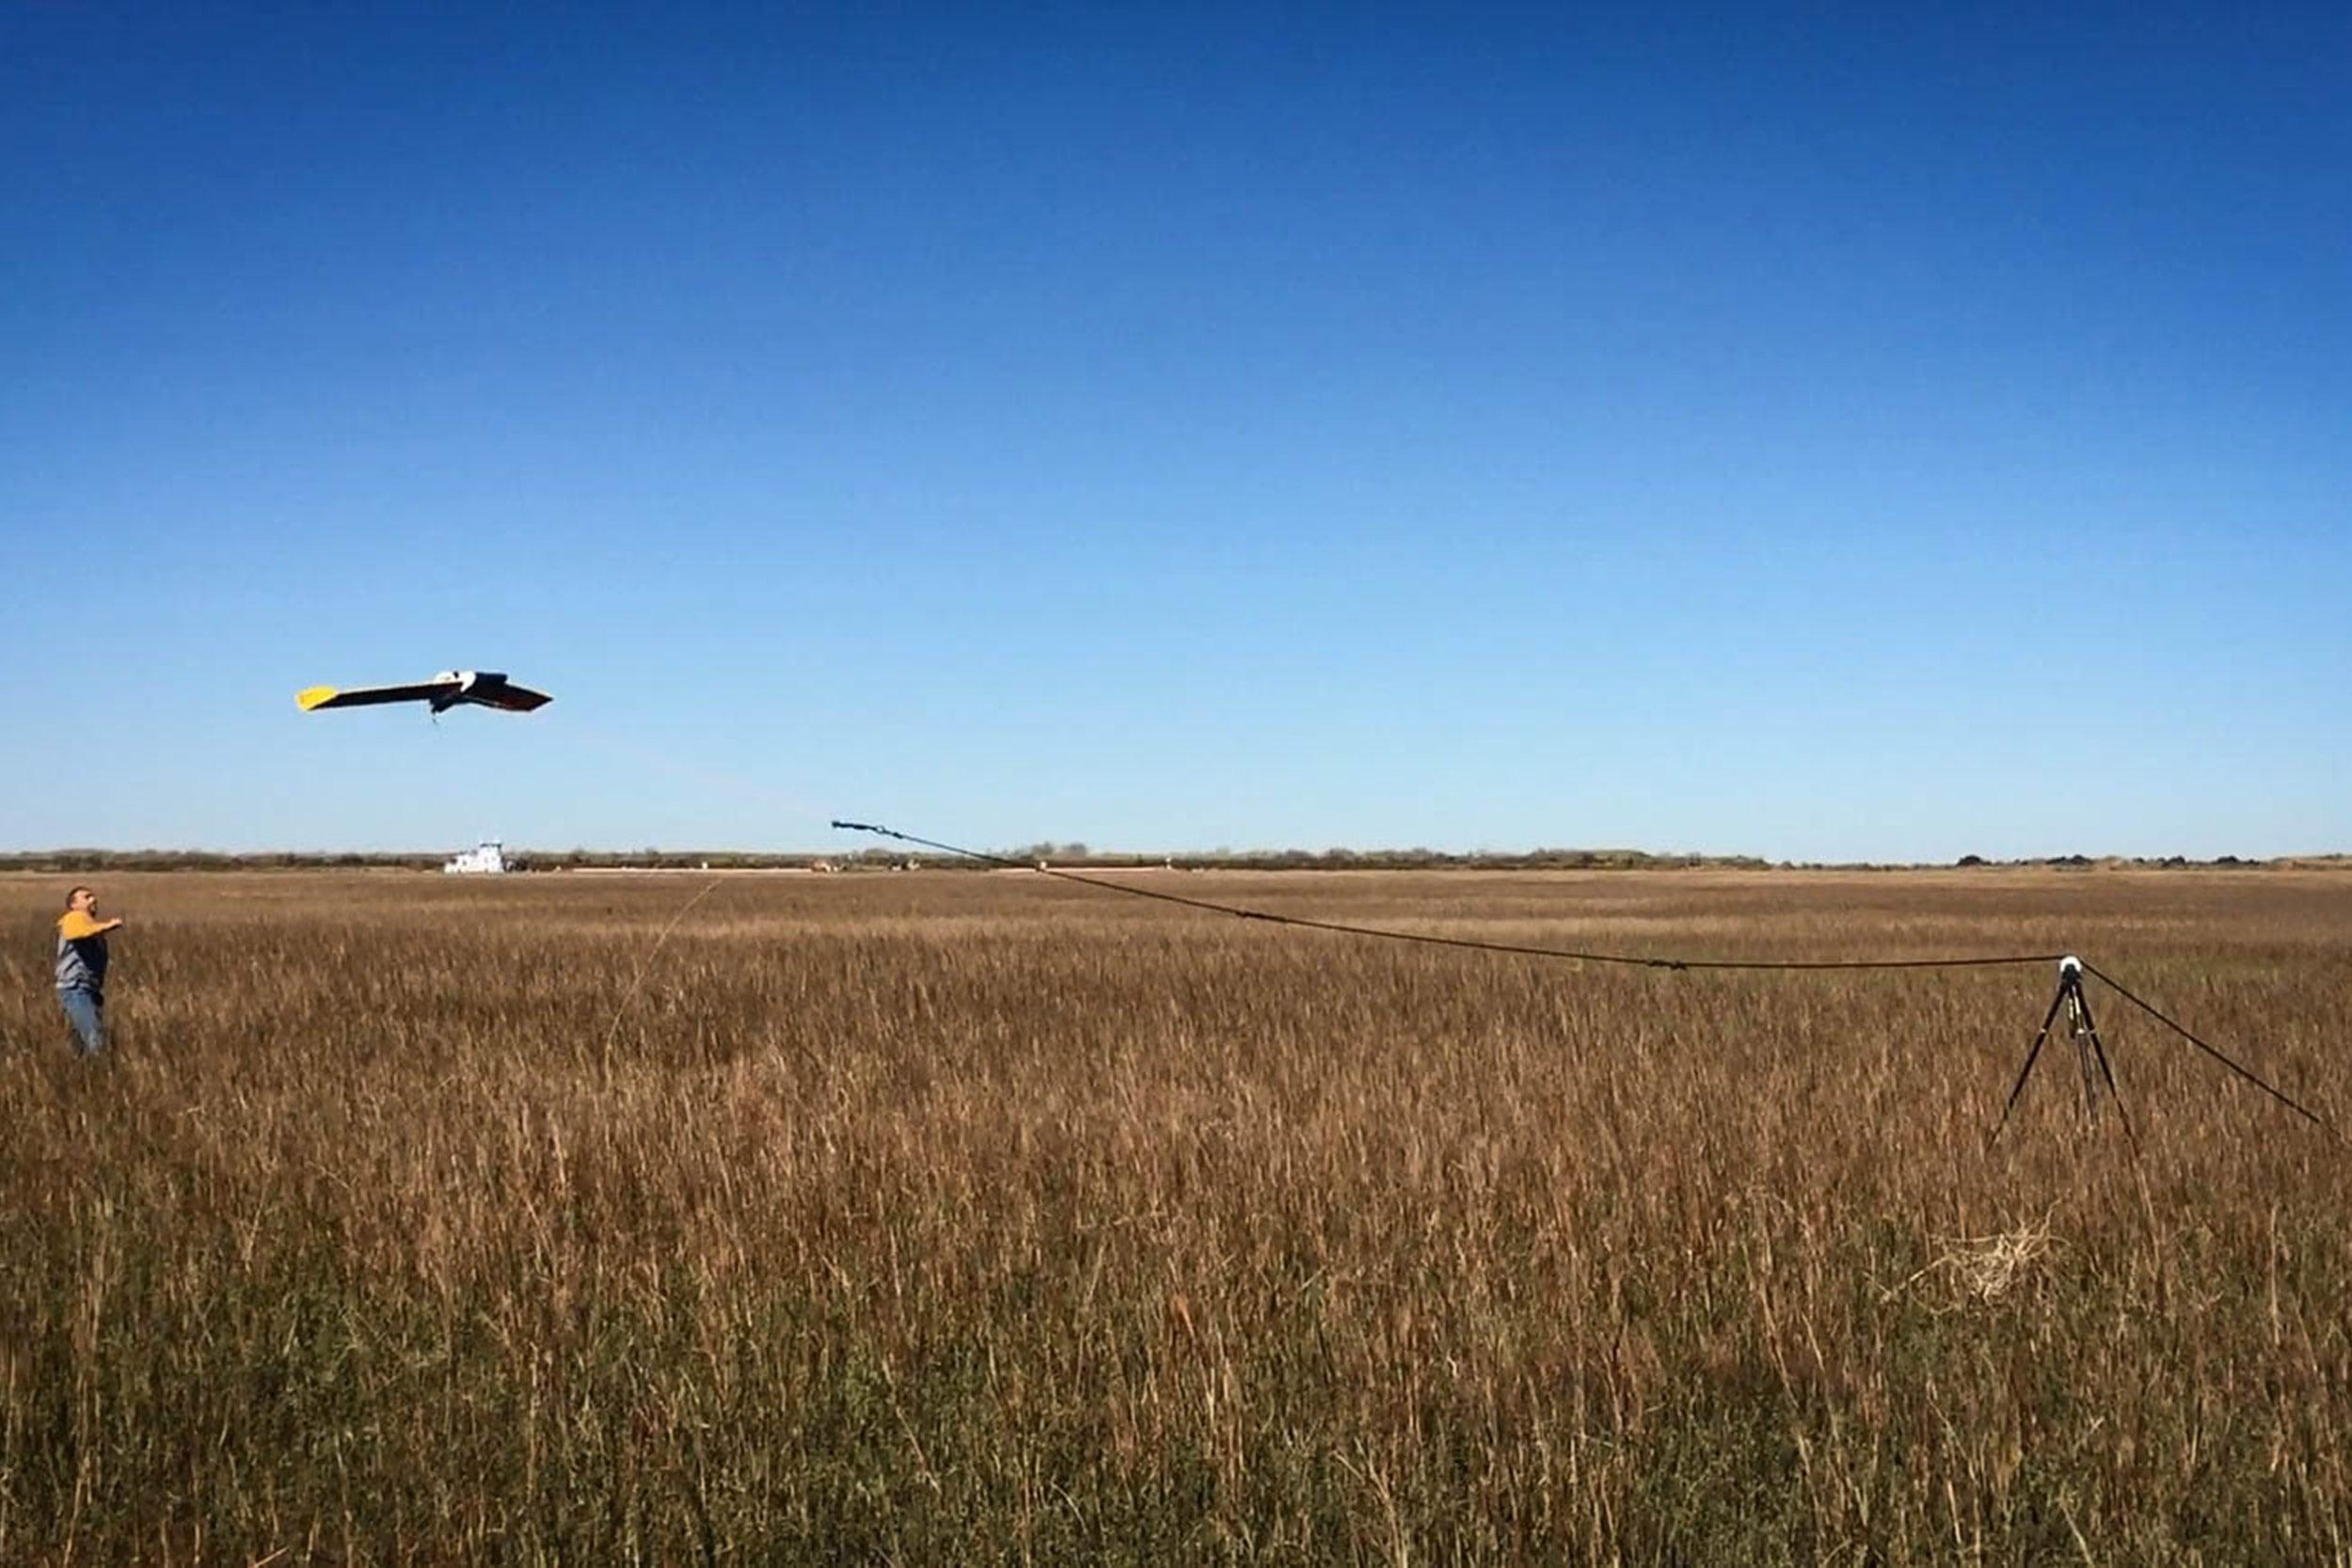 Marc Mokrech launches HAWK1, an unmanned aerial vehicle used for gathering data for EIH's research projects